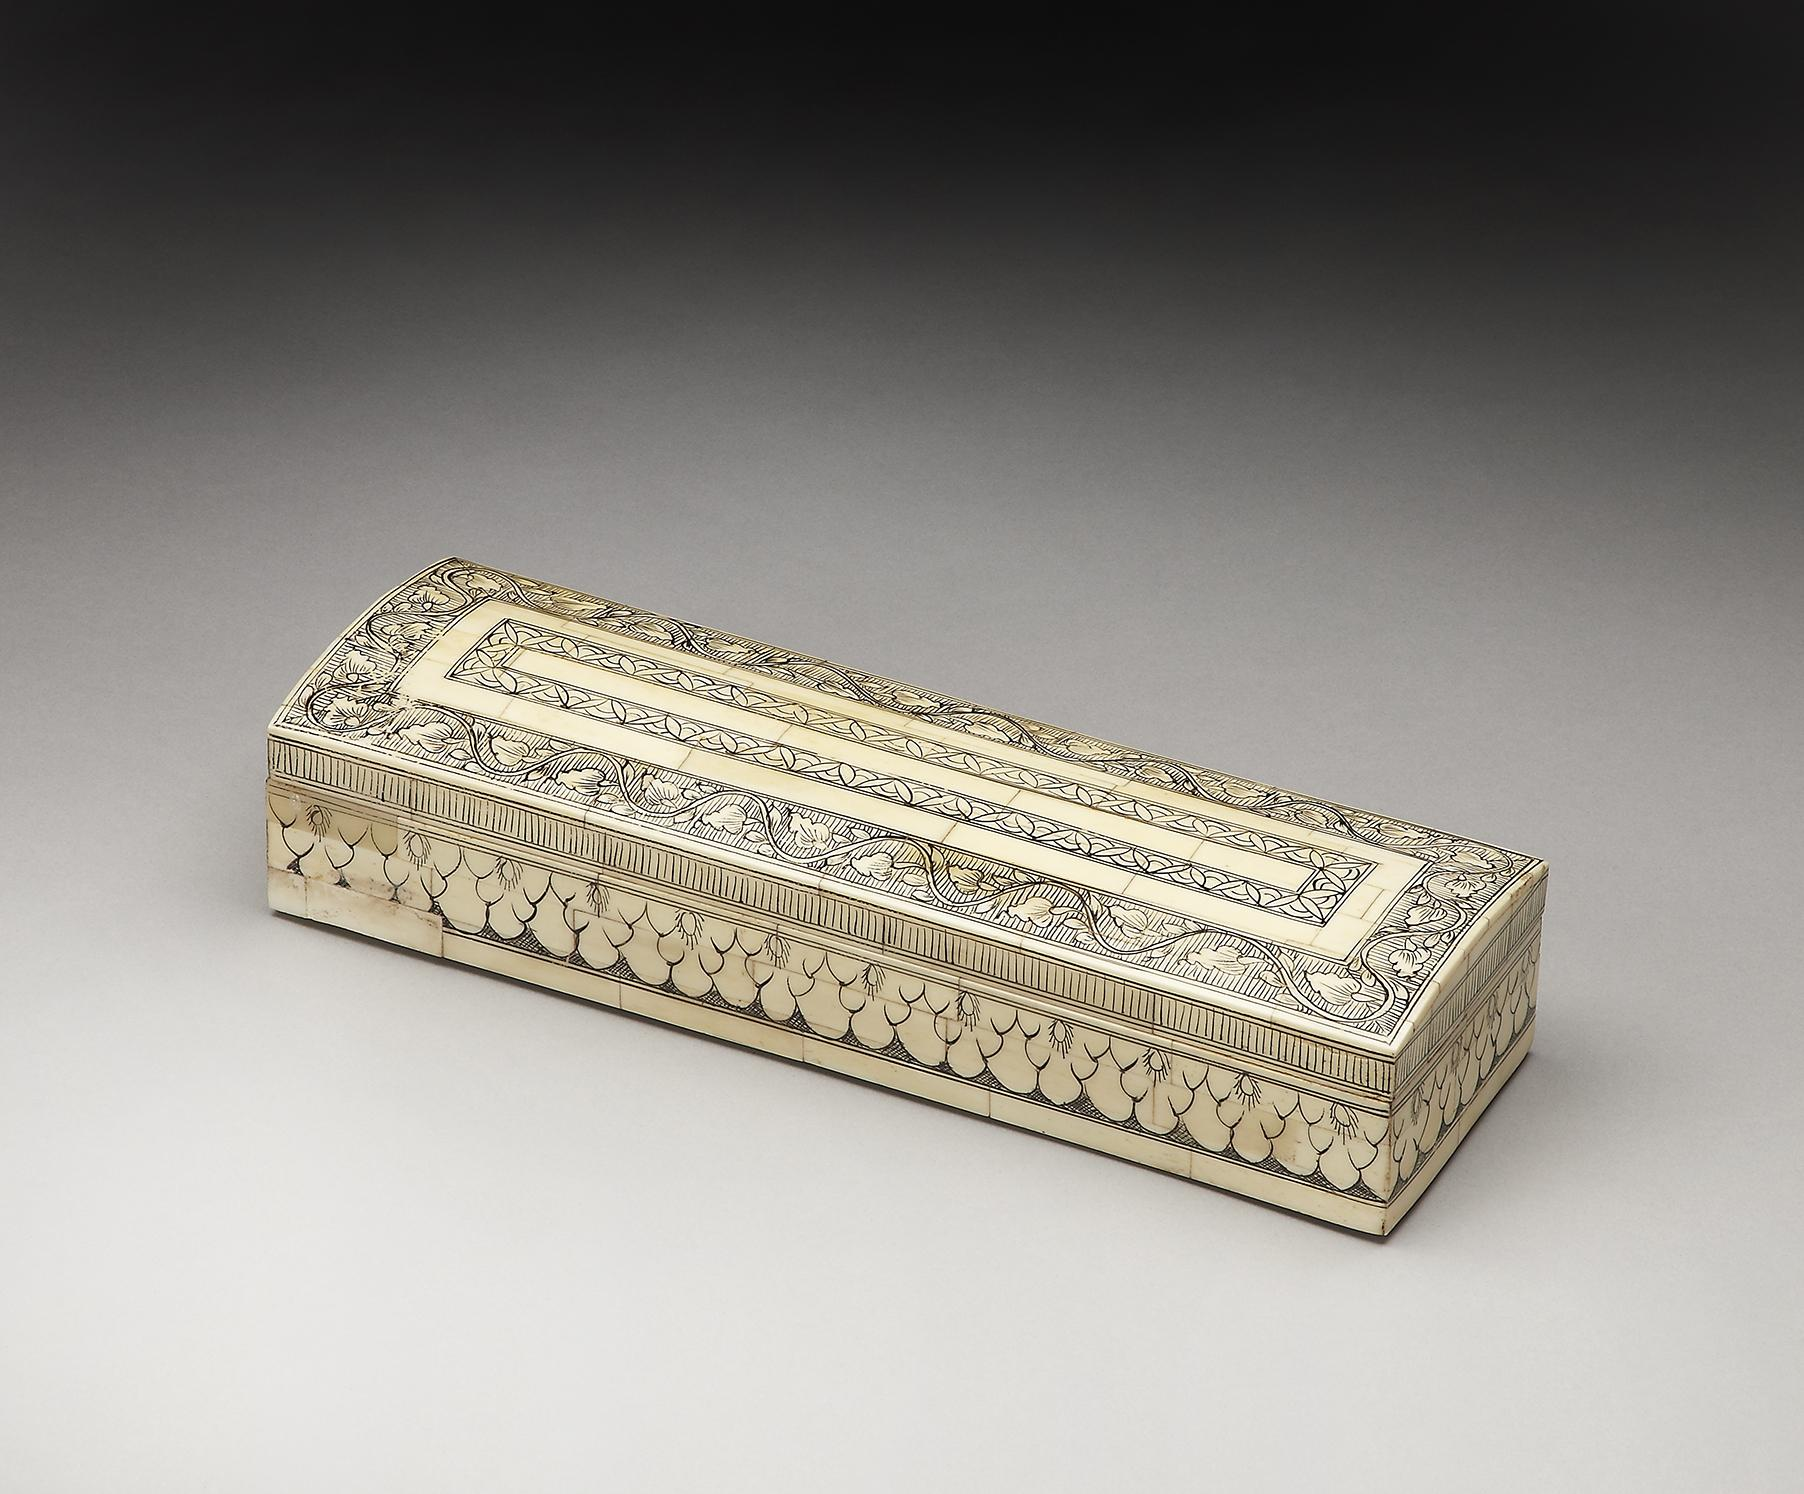 Butler Specialty Company Hors D'oeuvres Storage Box - Item Number: 2819016